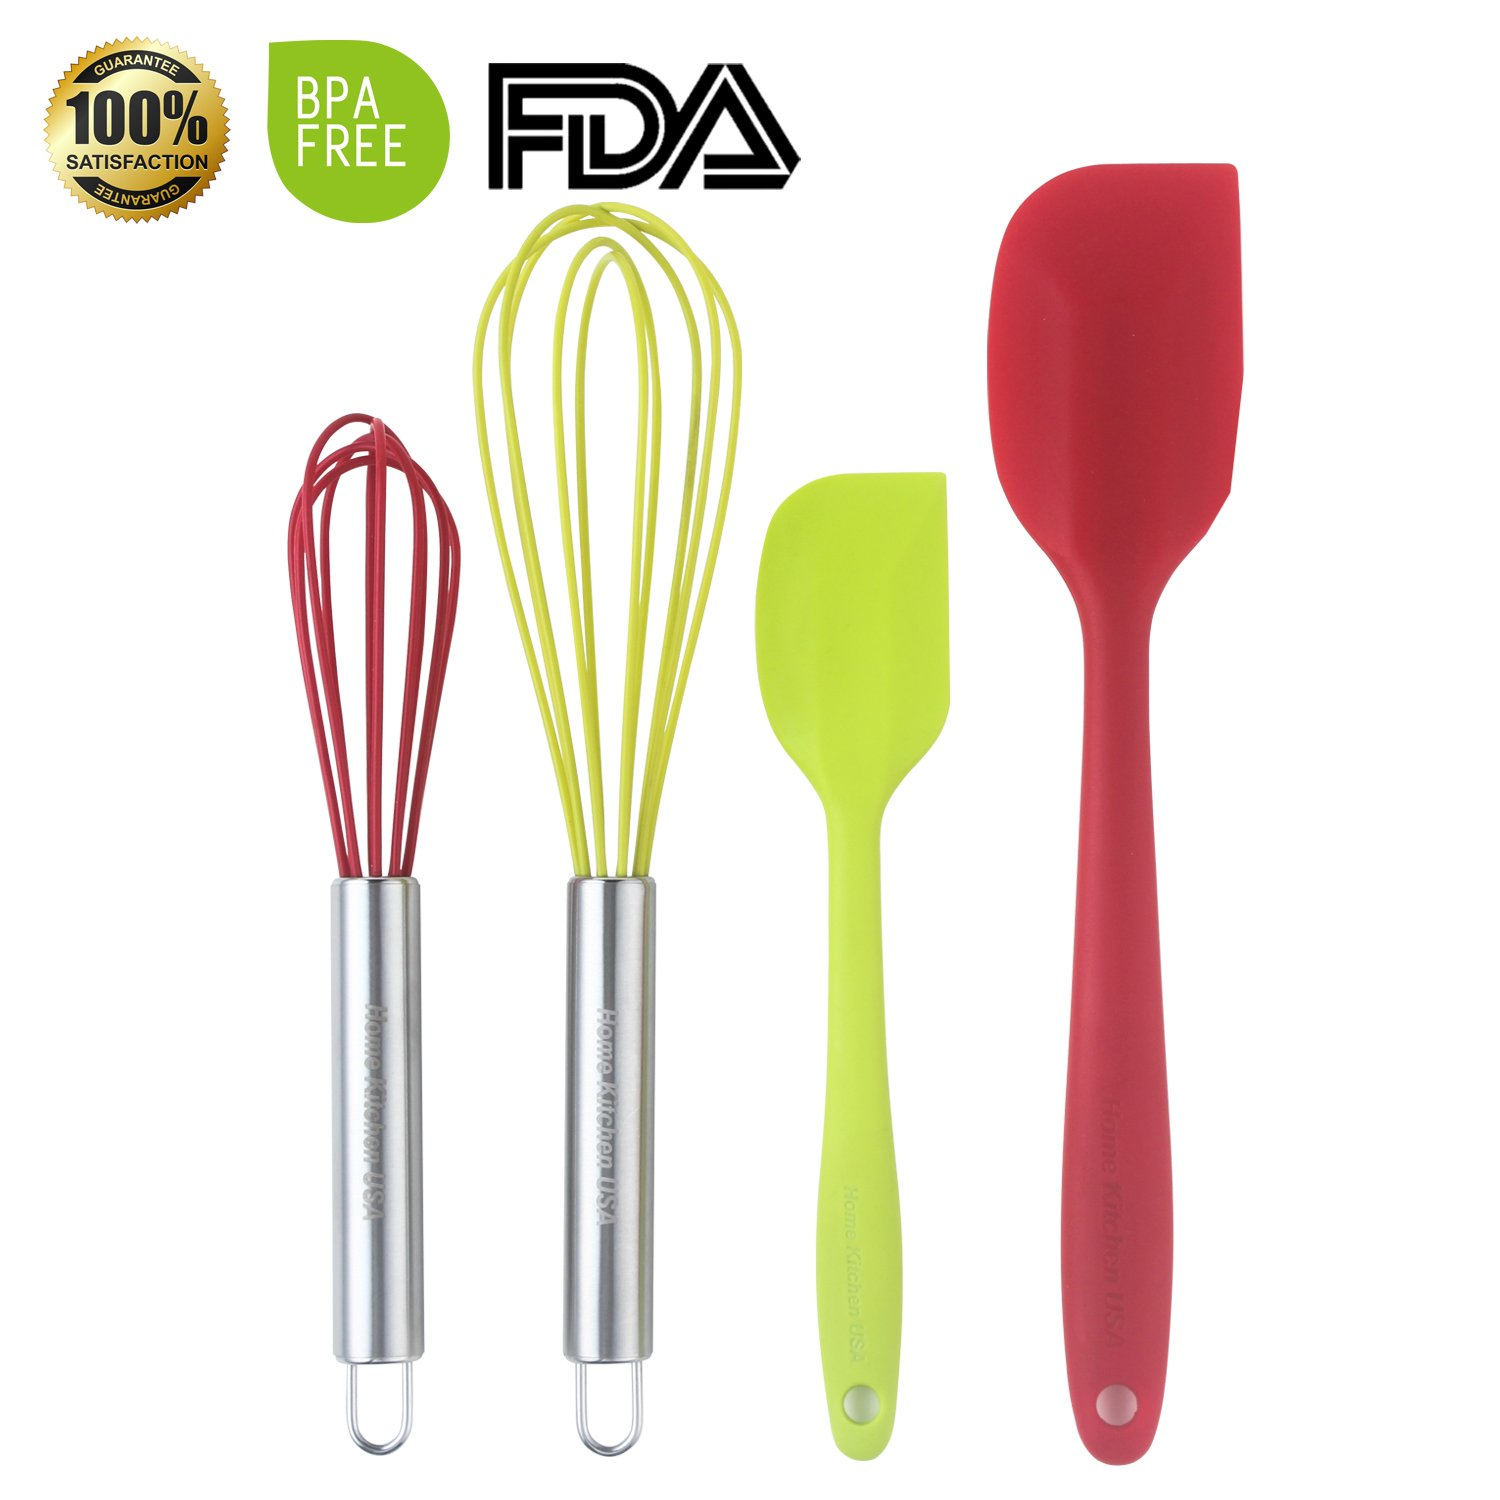 SET OF 4 Professional Quality Silicone Spatulas , Whisks For Cooking. Bright Red and Green Colors. Stainless Steel Coated Heat Resistant Dishwasher Safe